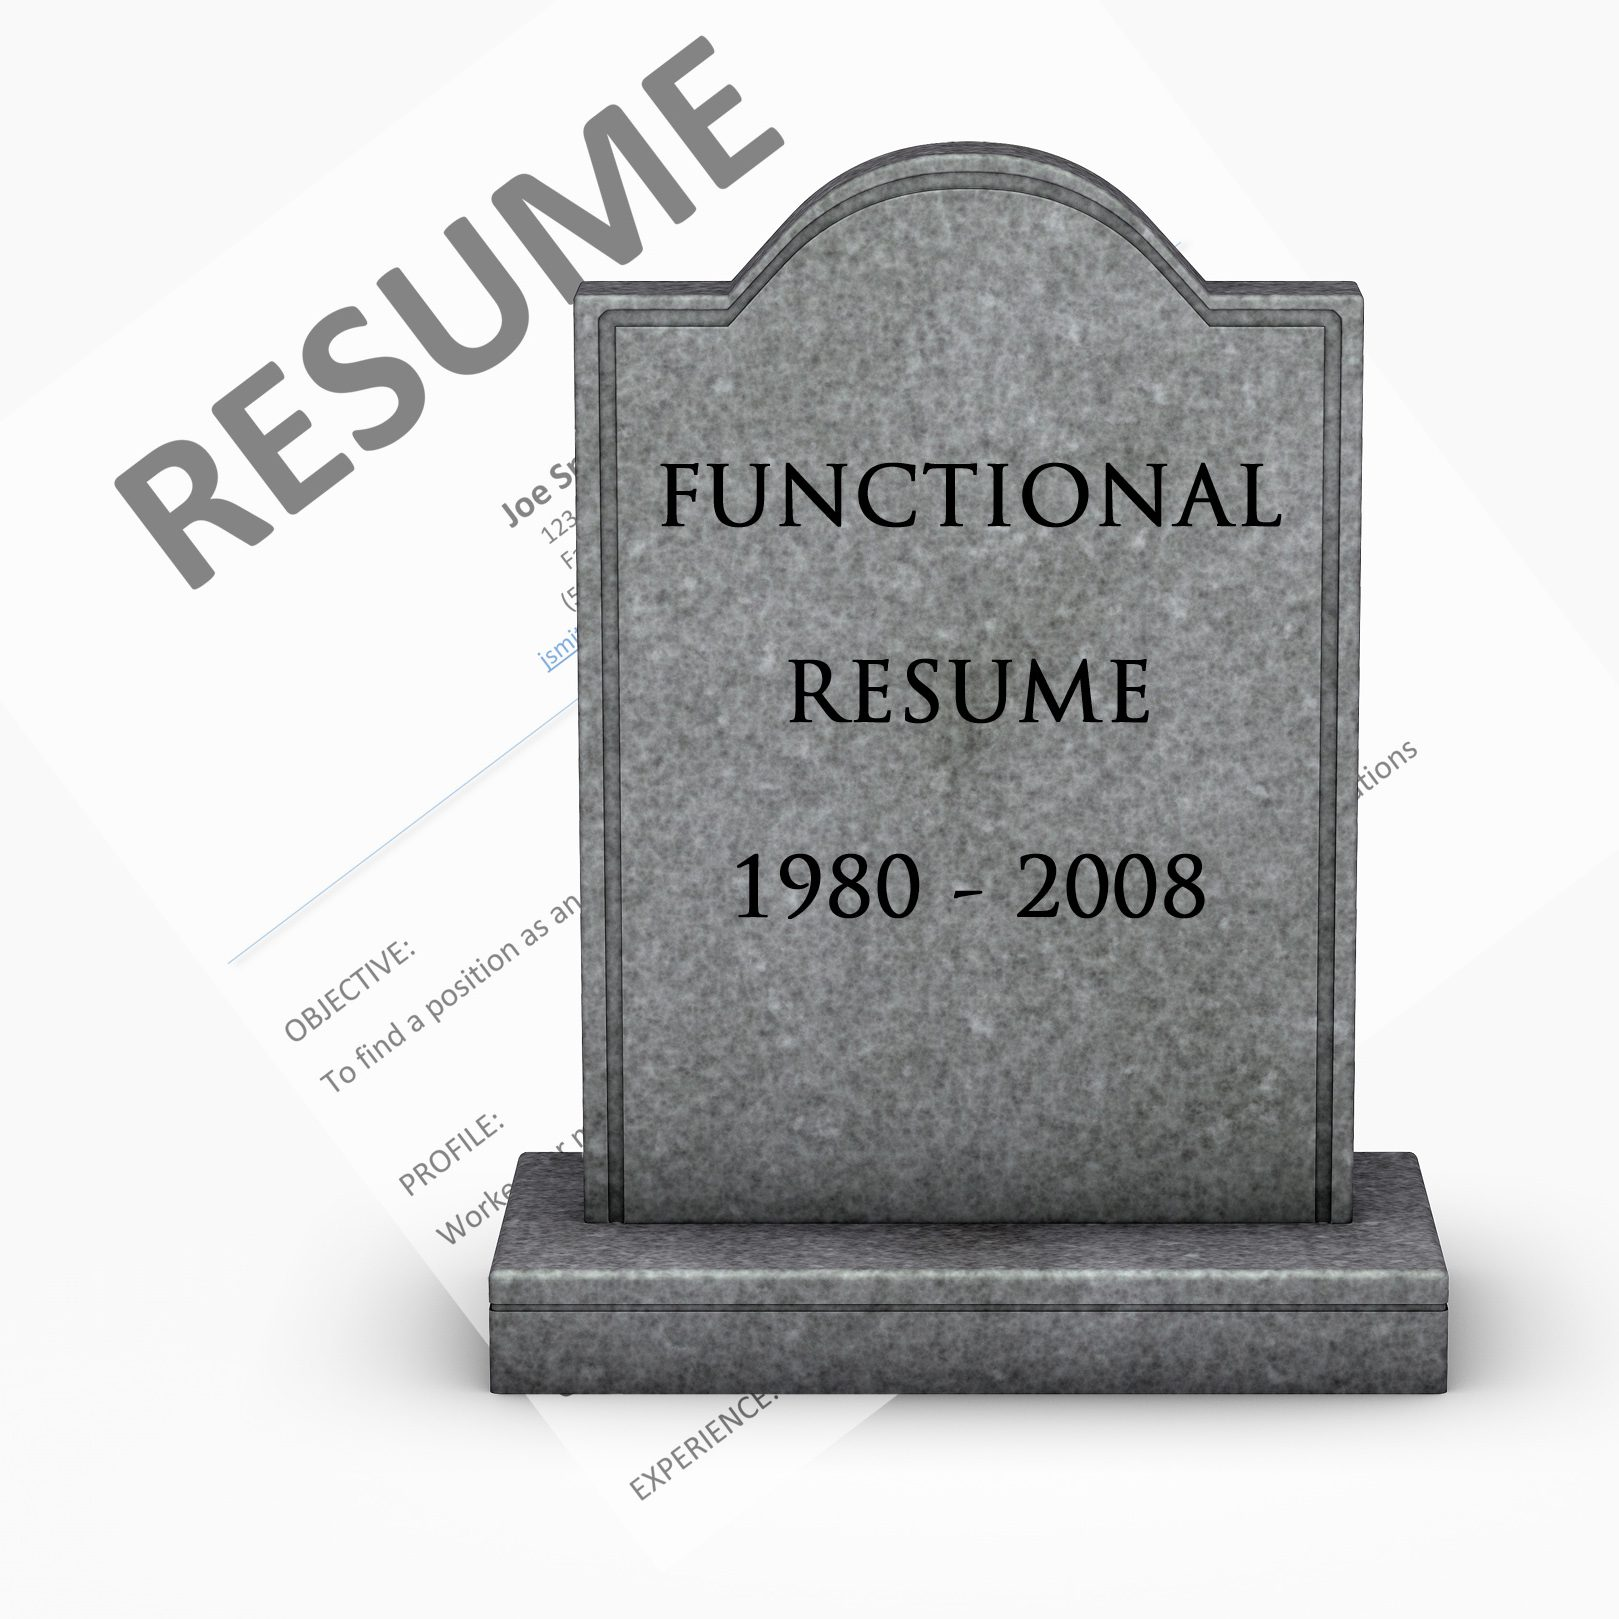 The functional resume is dead